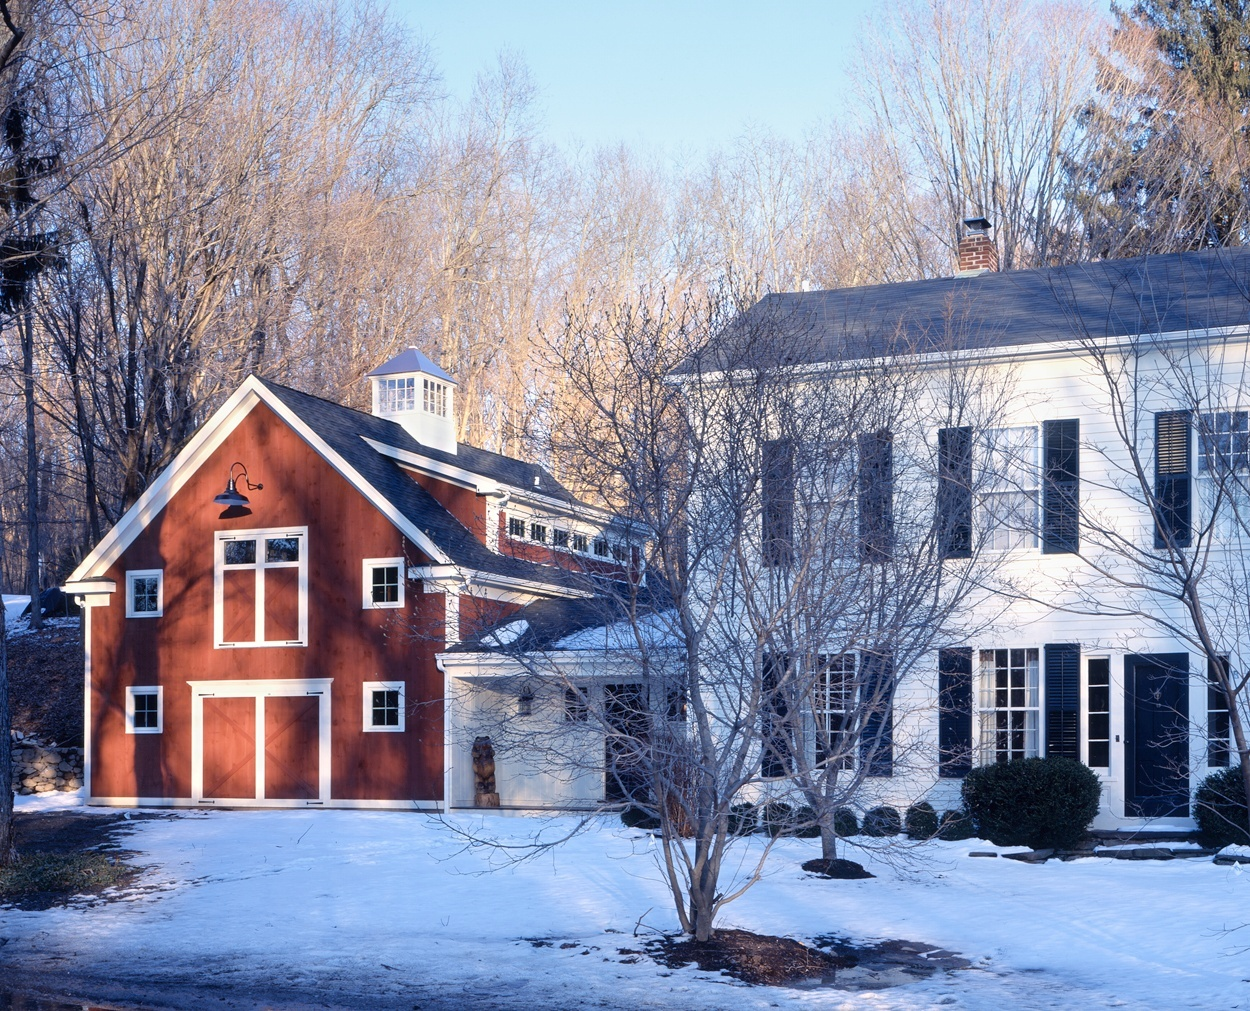 Wilton, CT colonial with new barn style garage with shed dormer.